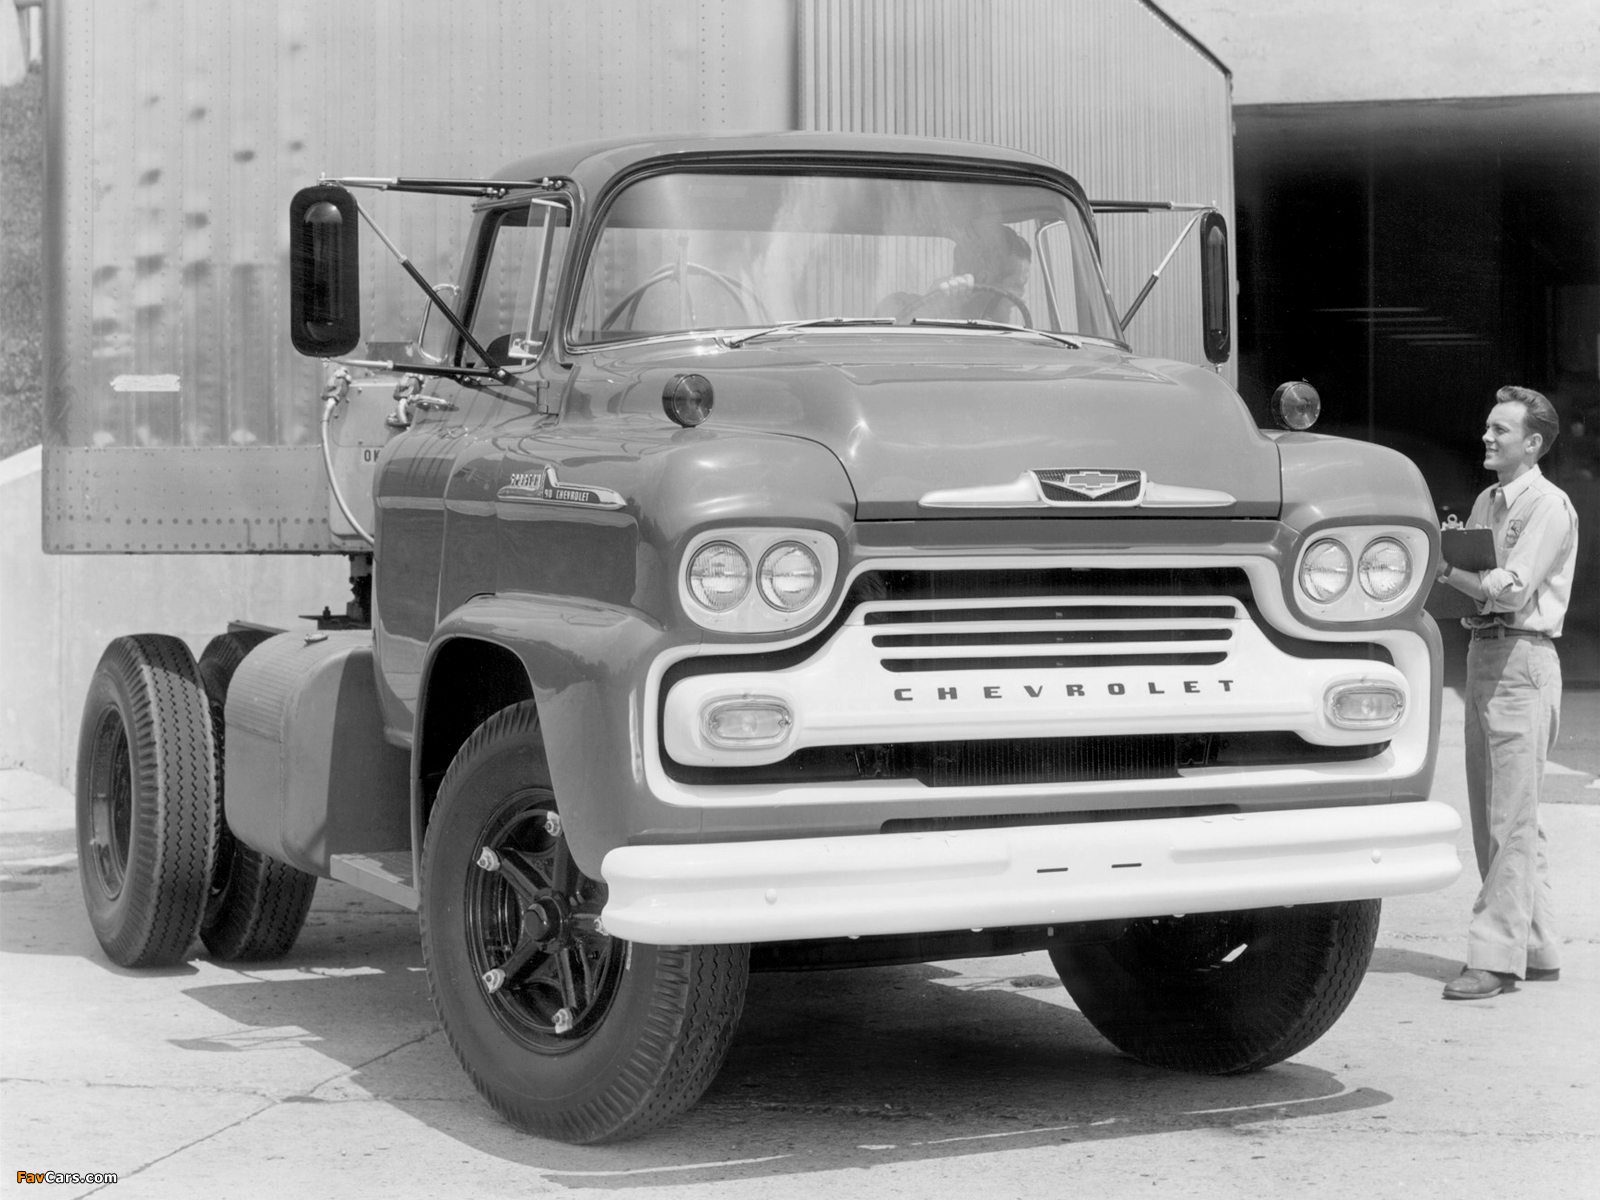 6x6 Platform Truck With Lift Arm as well 1959 Buick Heater Air Conditioner moreover Sprinter moreover 1462890 Stock 2wd Front Sway Bar Dimensions likewise . on truck chassis diagram